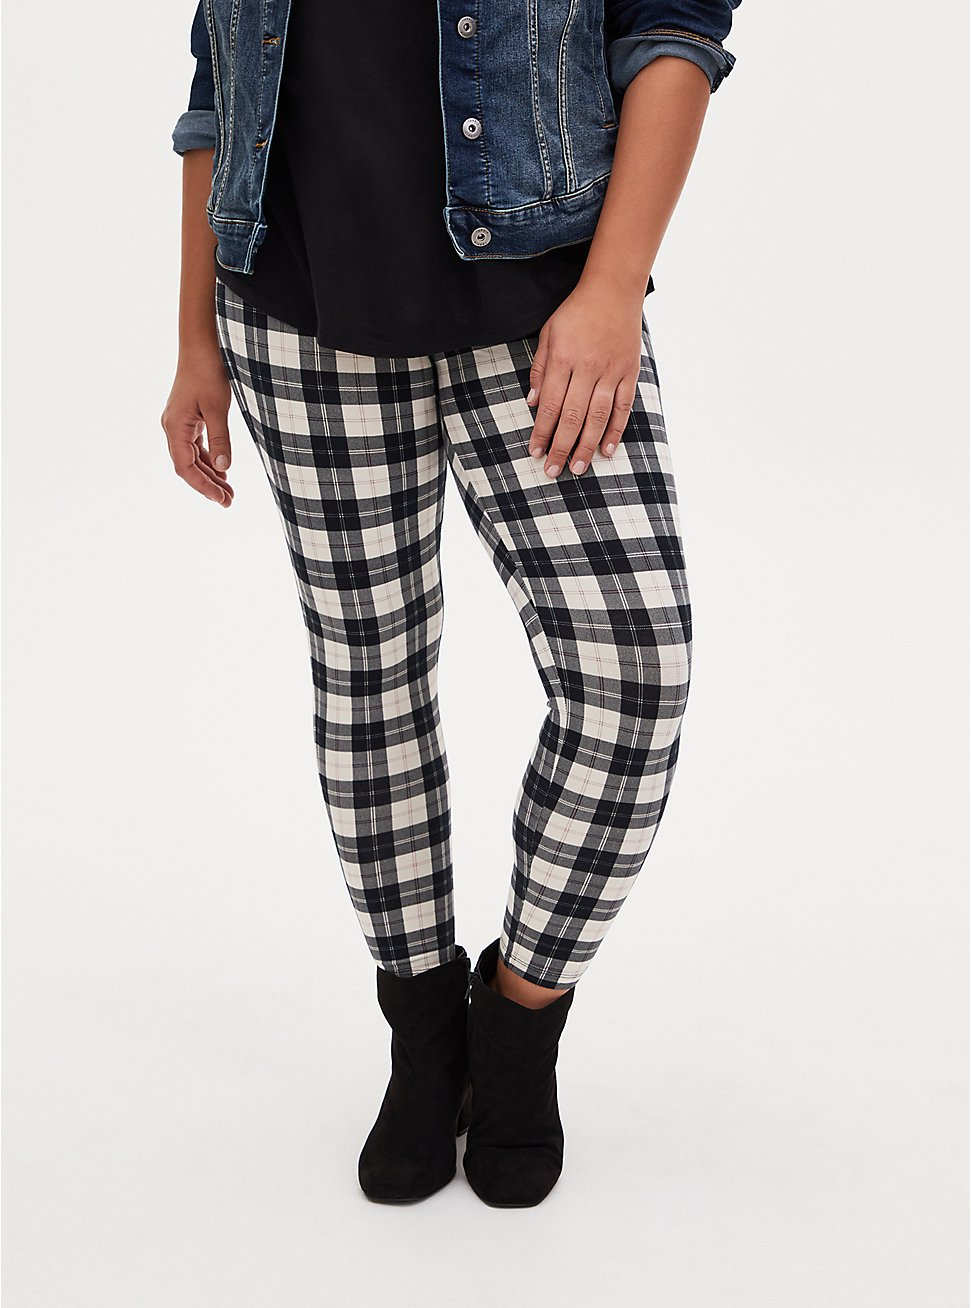 Premium Leggings - Buffalo Plaid Black & White  , MULTI, hi-res